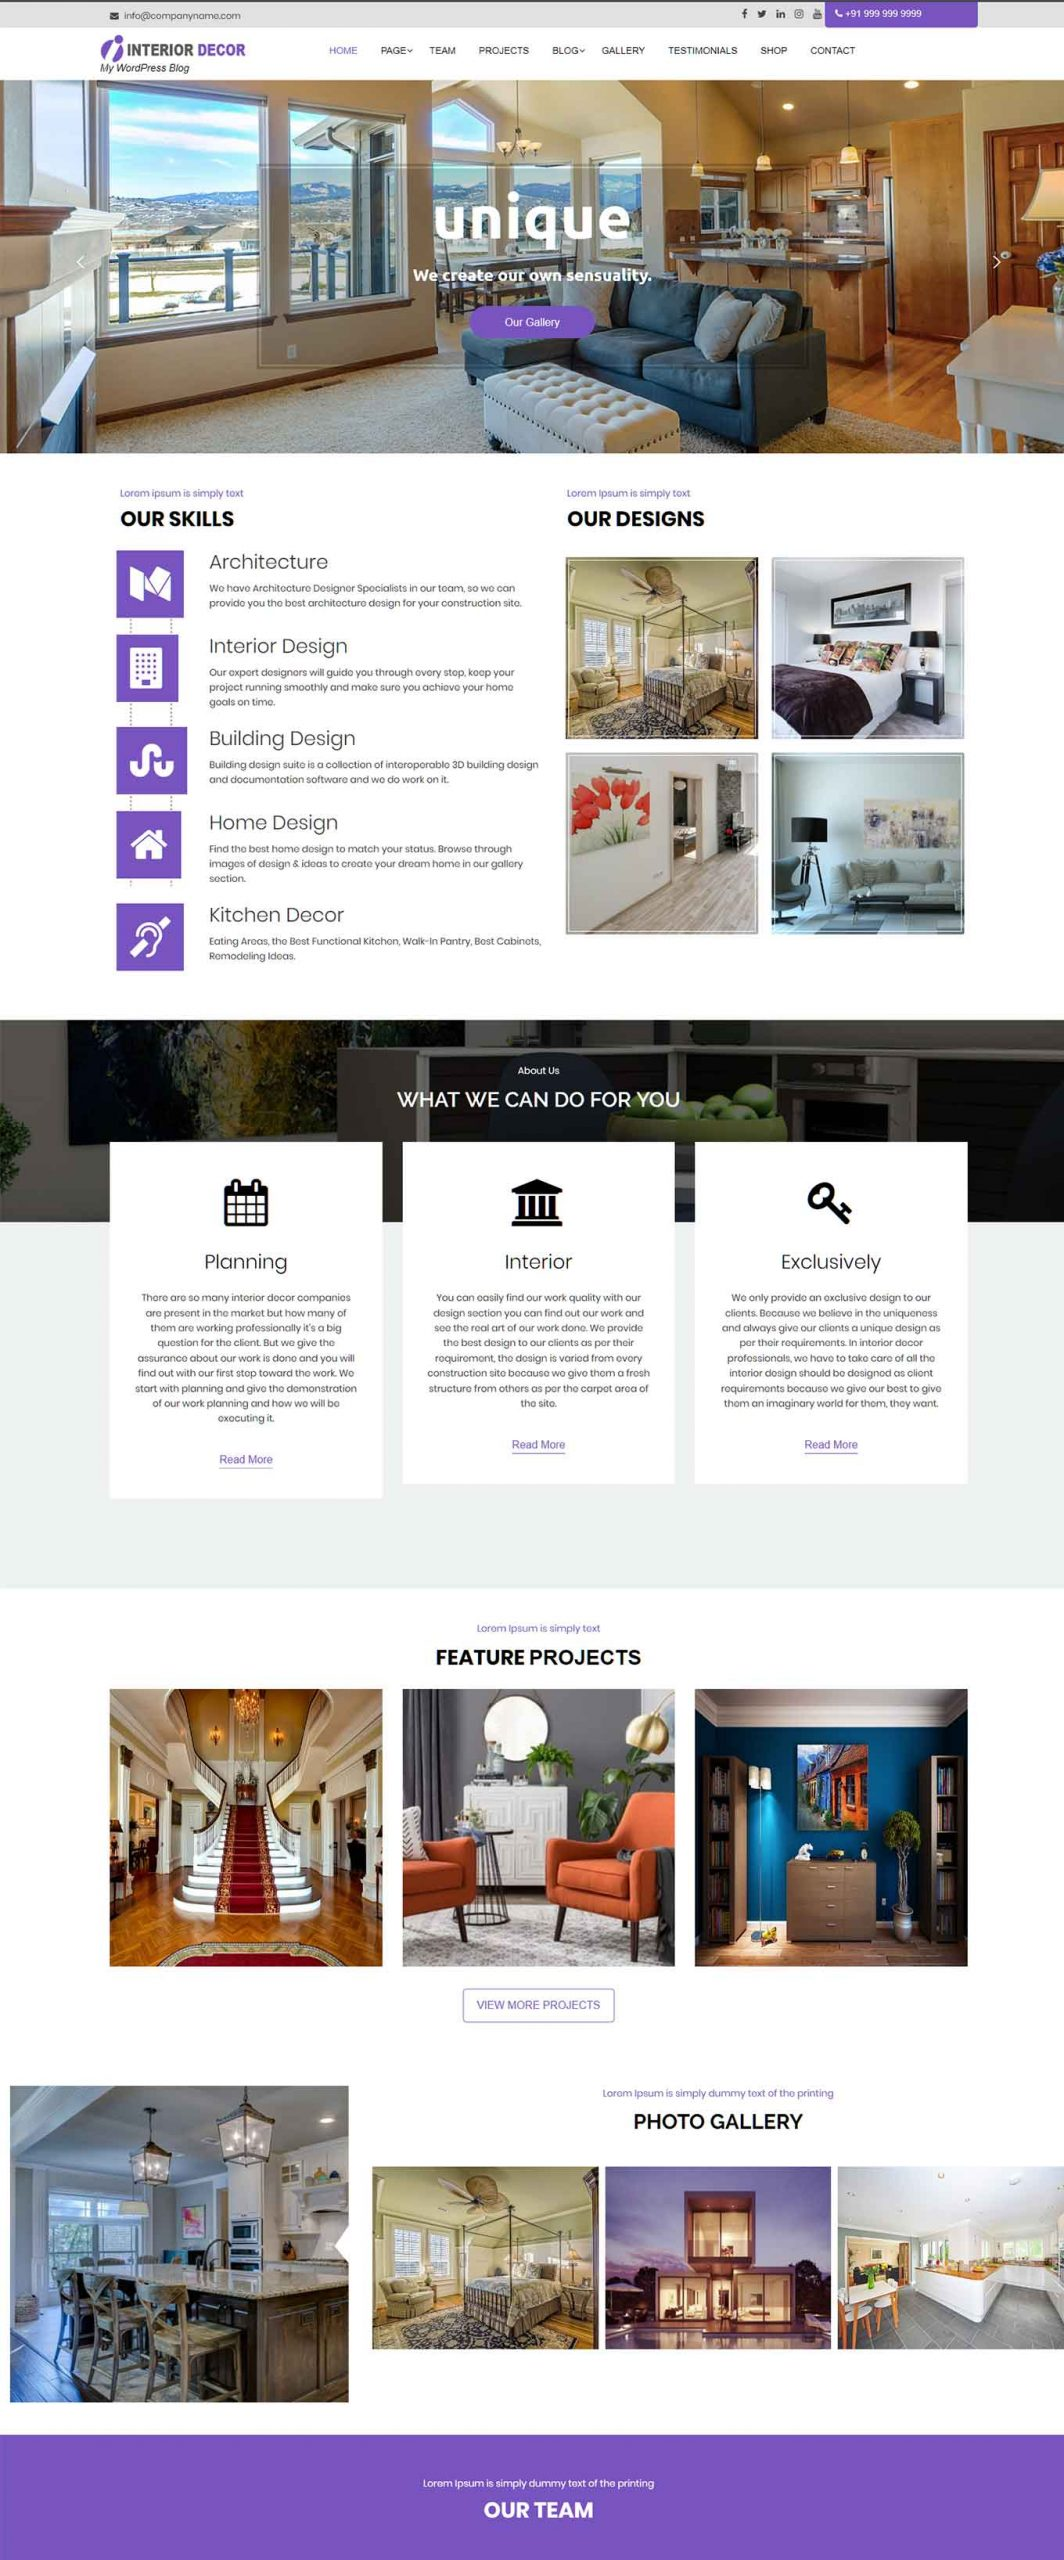 50 Best Interior Design Wordpress Themes 2020 Free Premium Theme Junkie